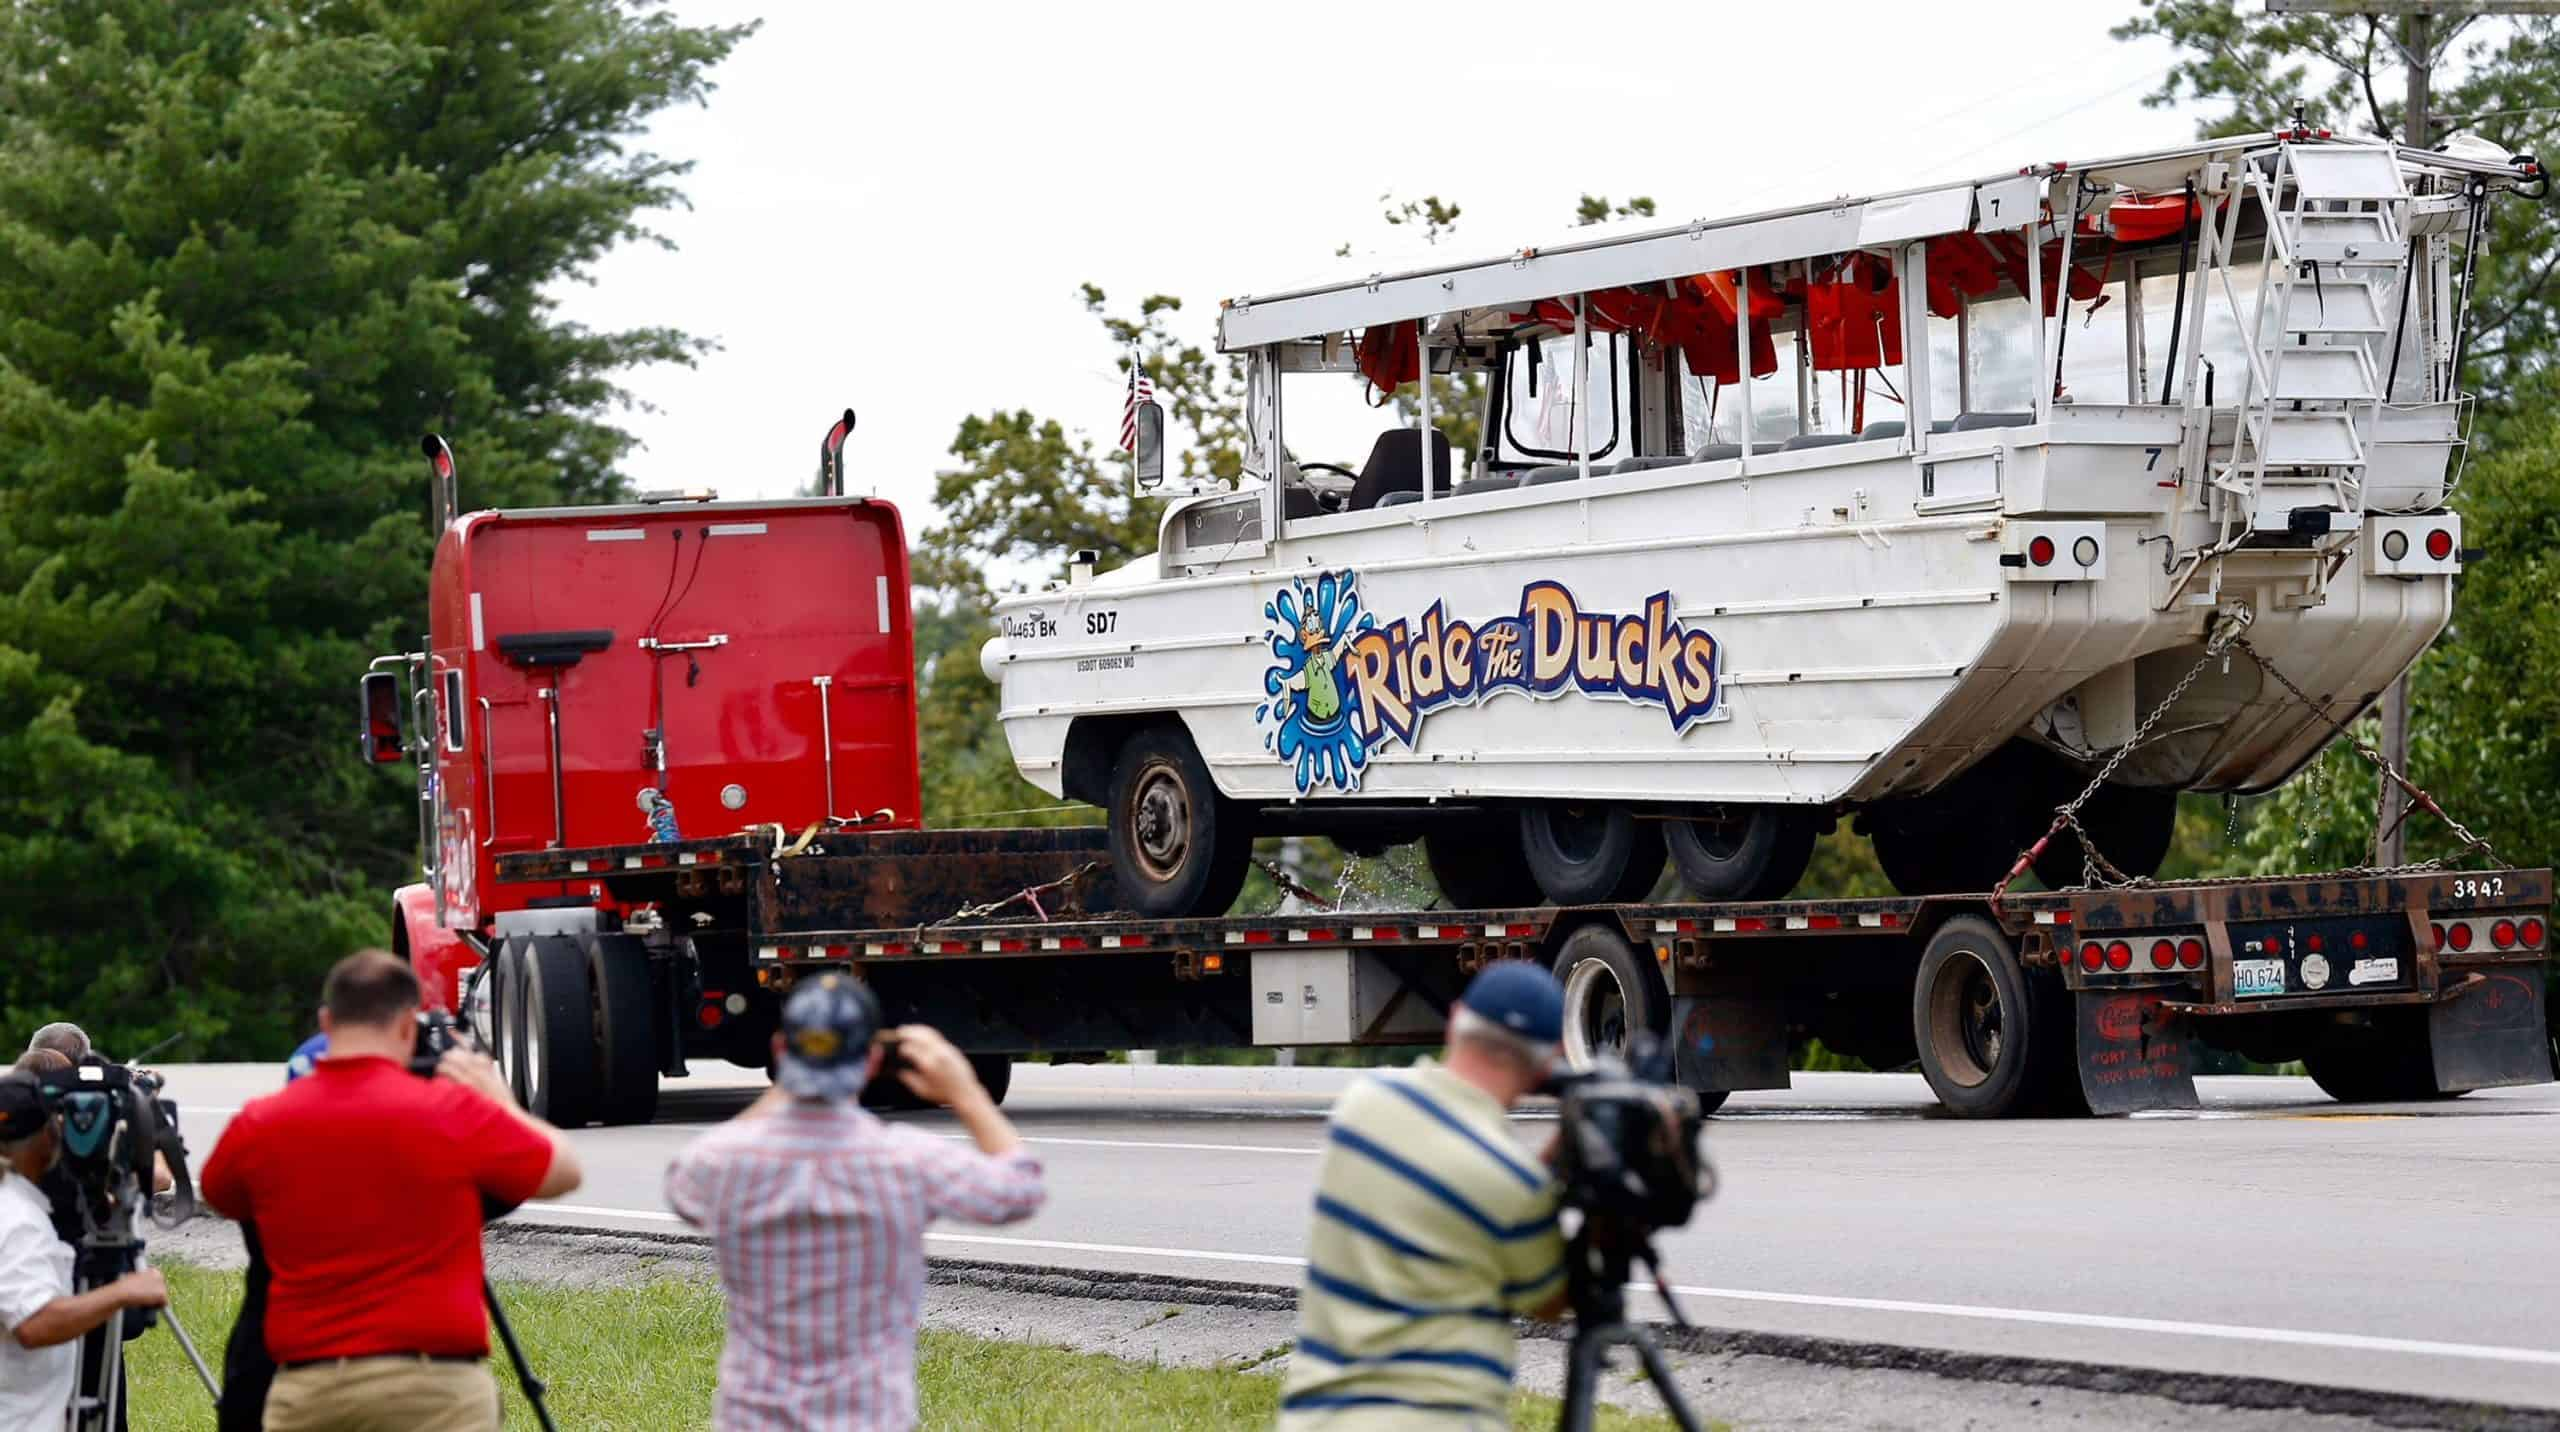 Coast Guard finds probable cause for 'negligence' in Branson duck boat tragedy, feds say